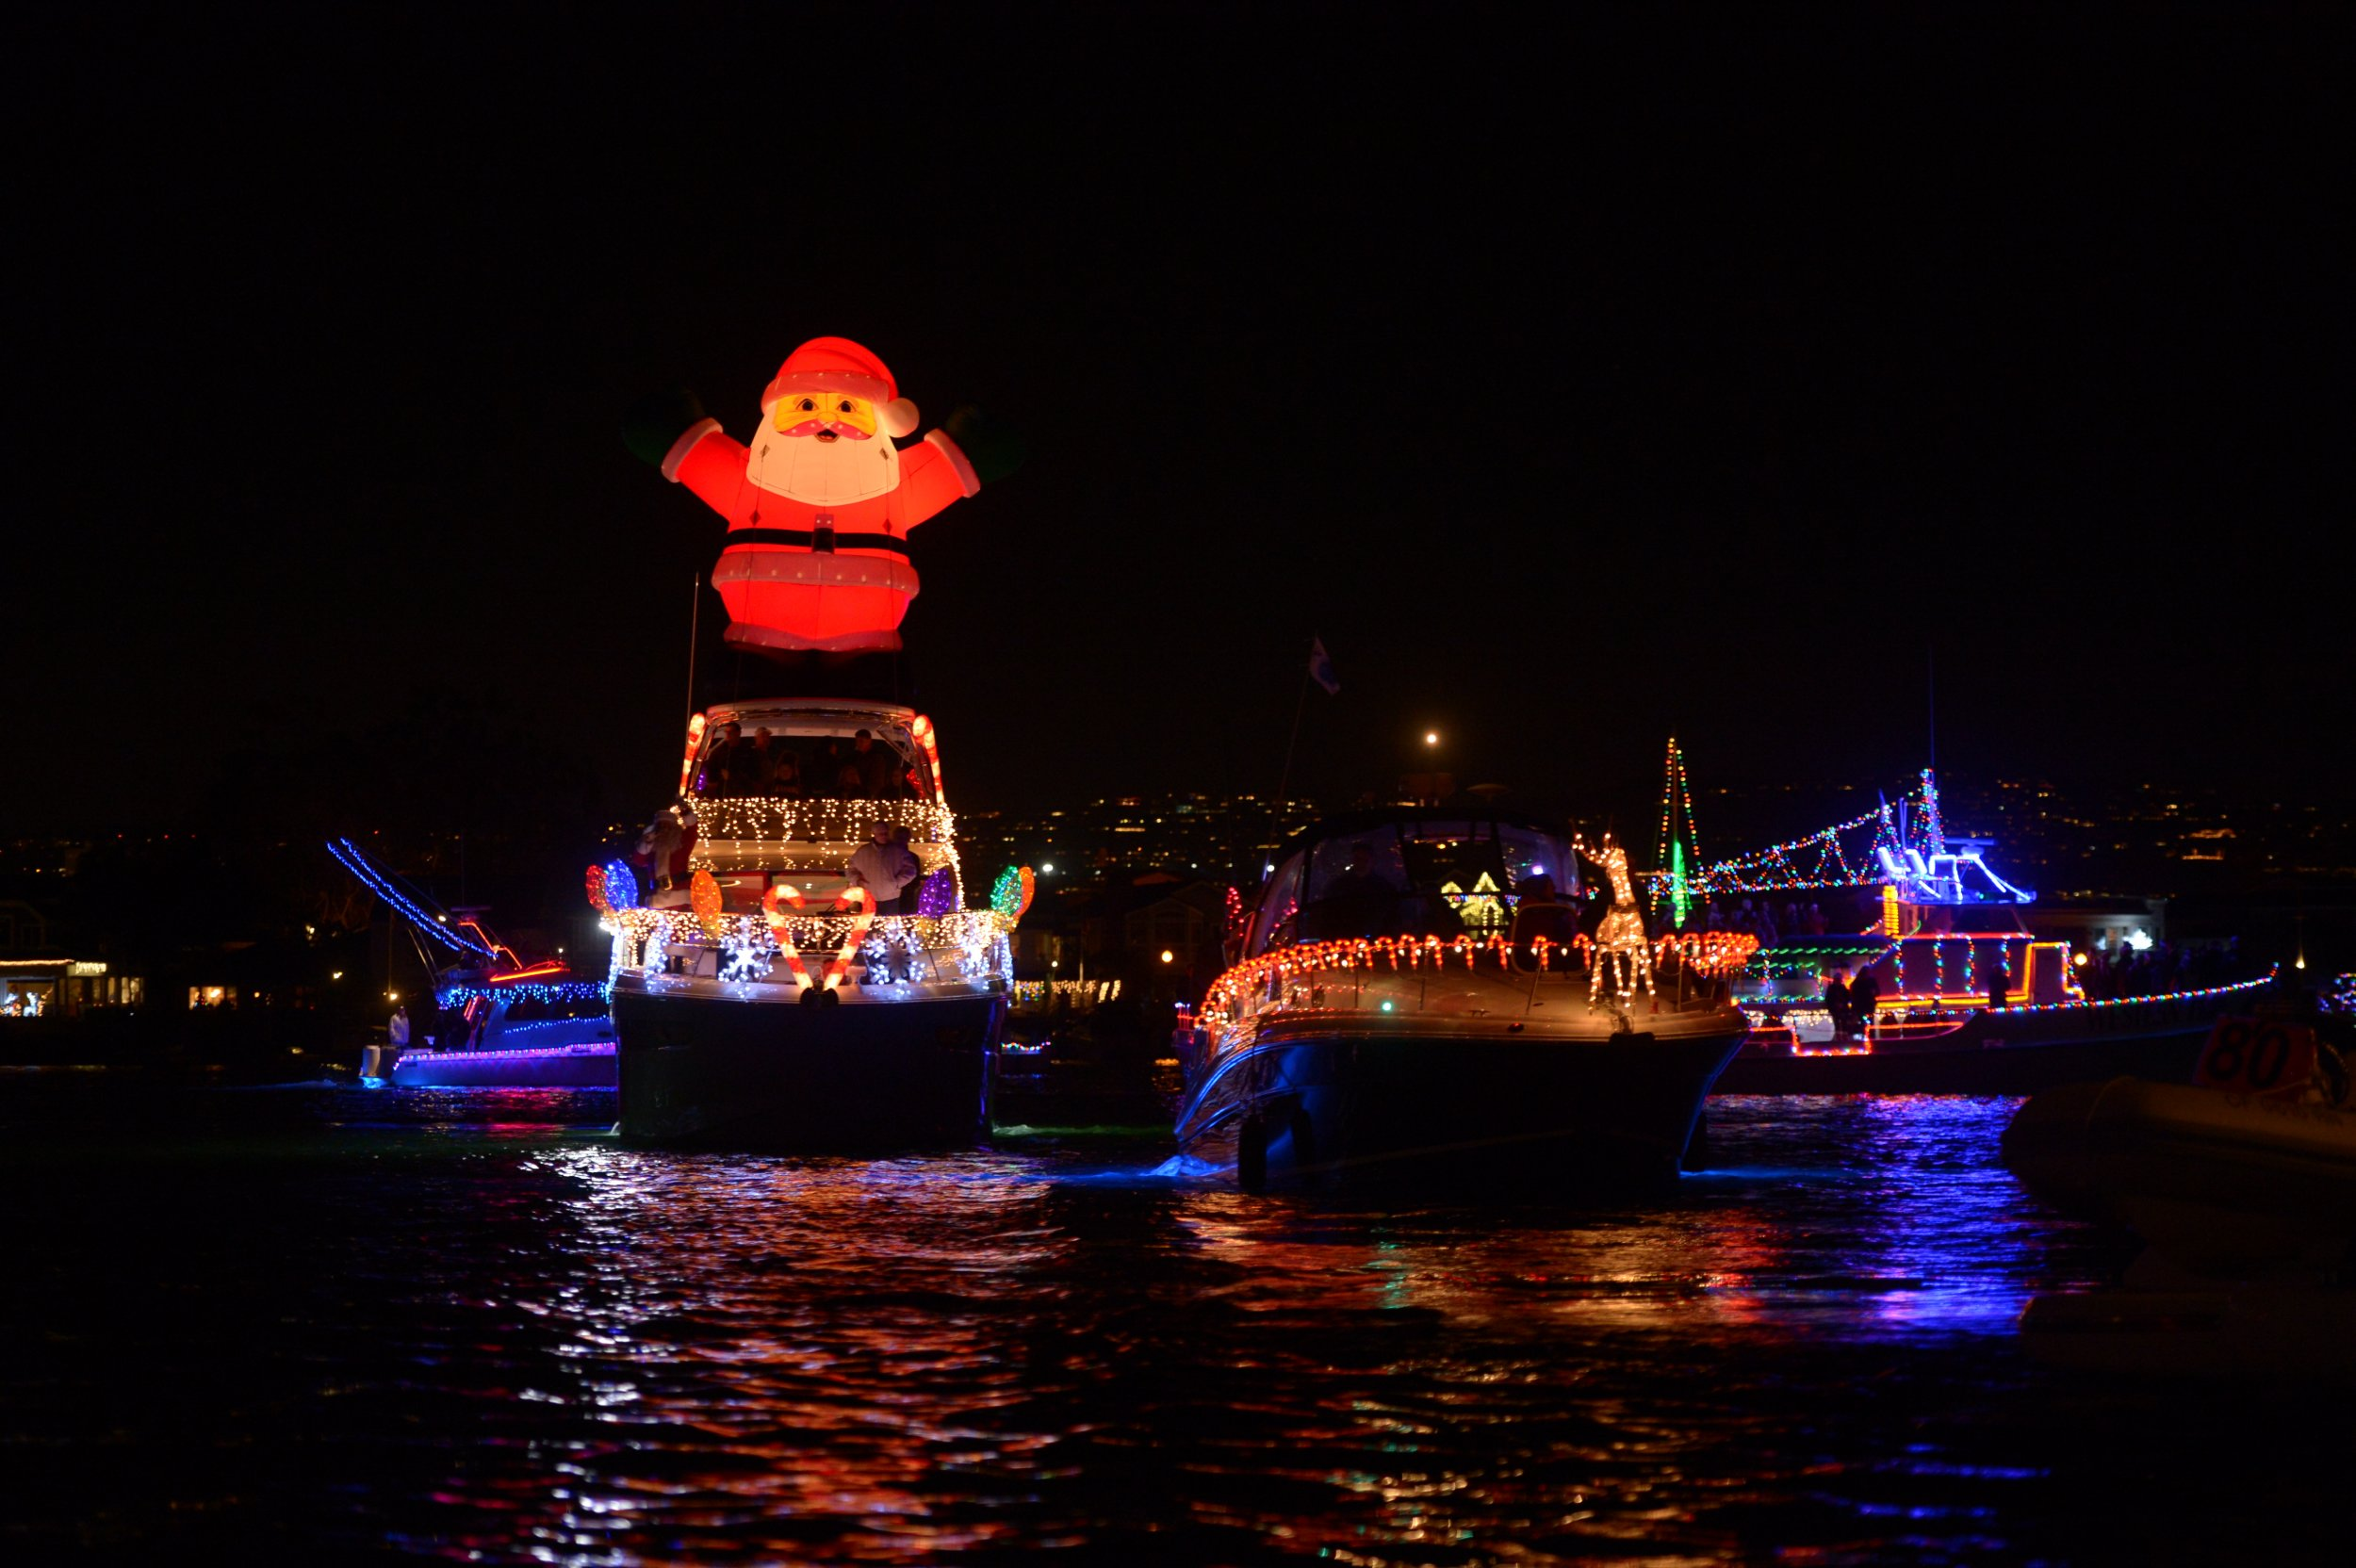 Photos Boat Parades Light Up The Seas With Holiday Cheer